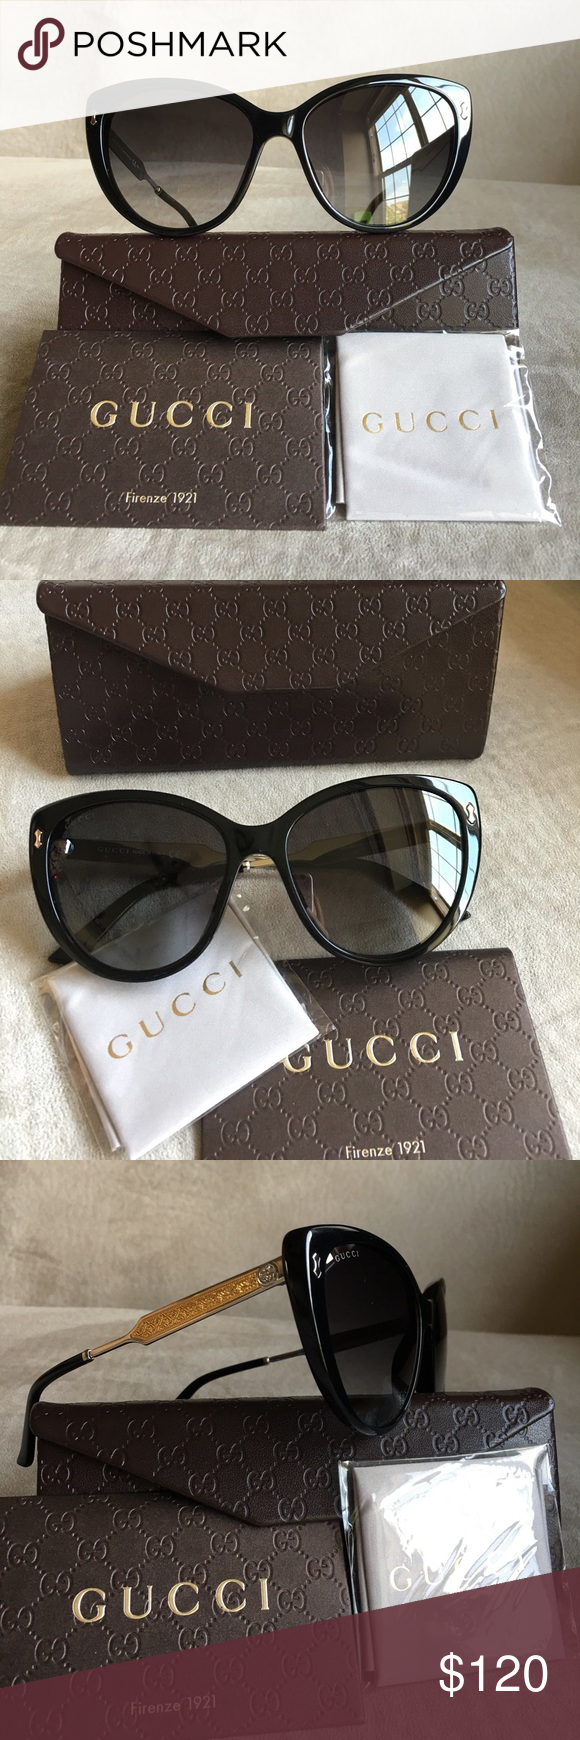 c6b390bf28c Authentic NEW Gucci GG3804 Women Sunglasses Almost new condition ...